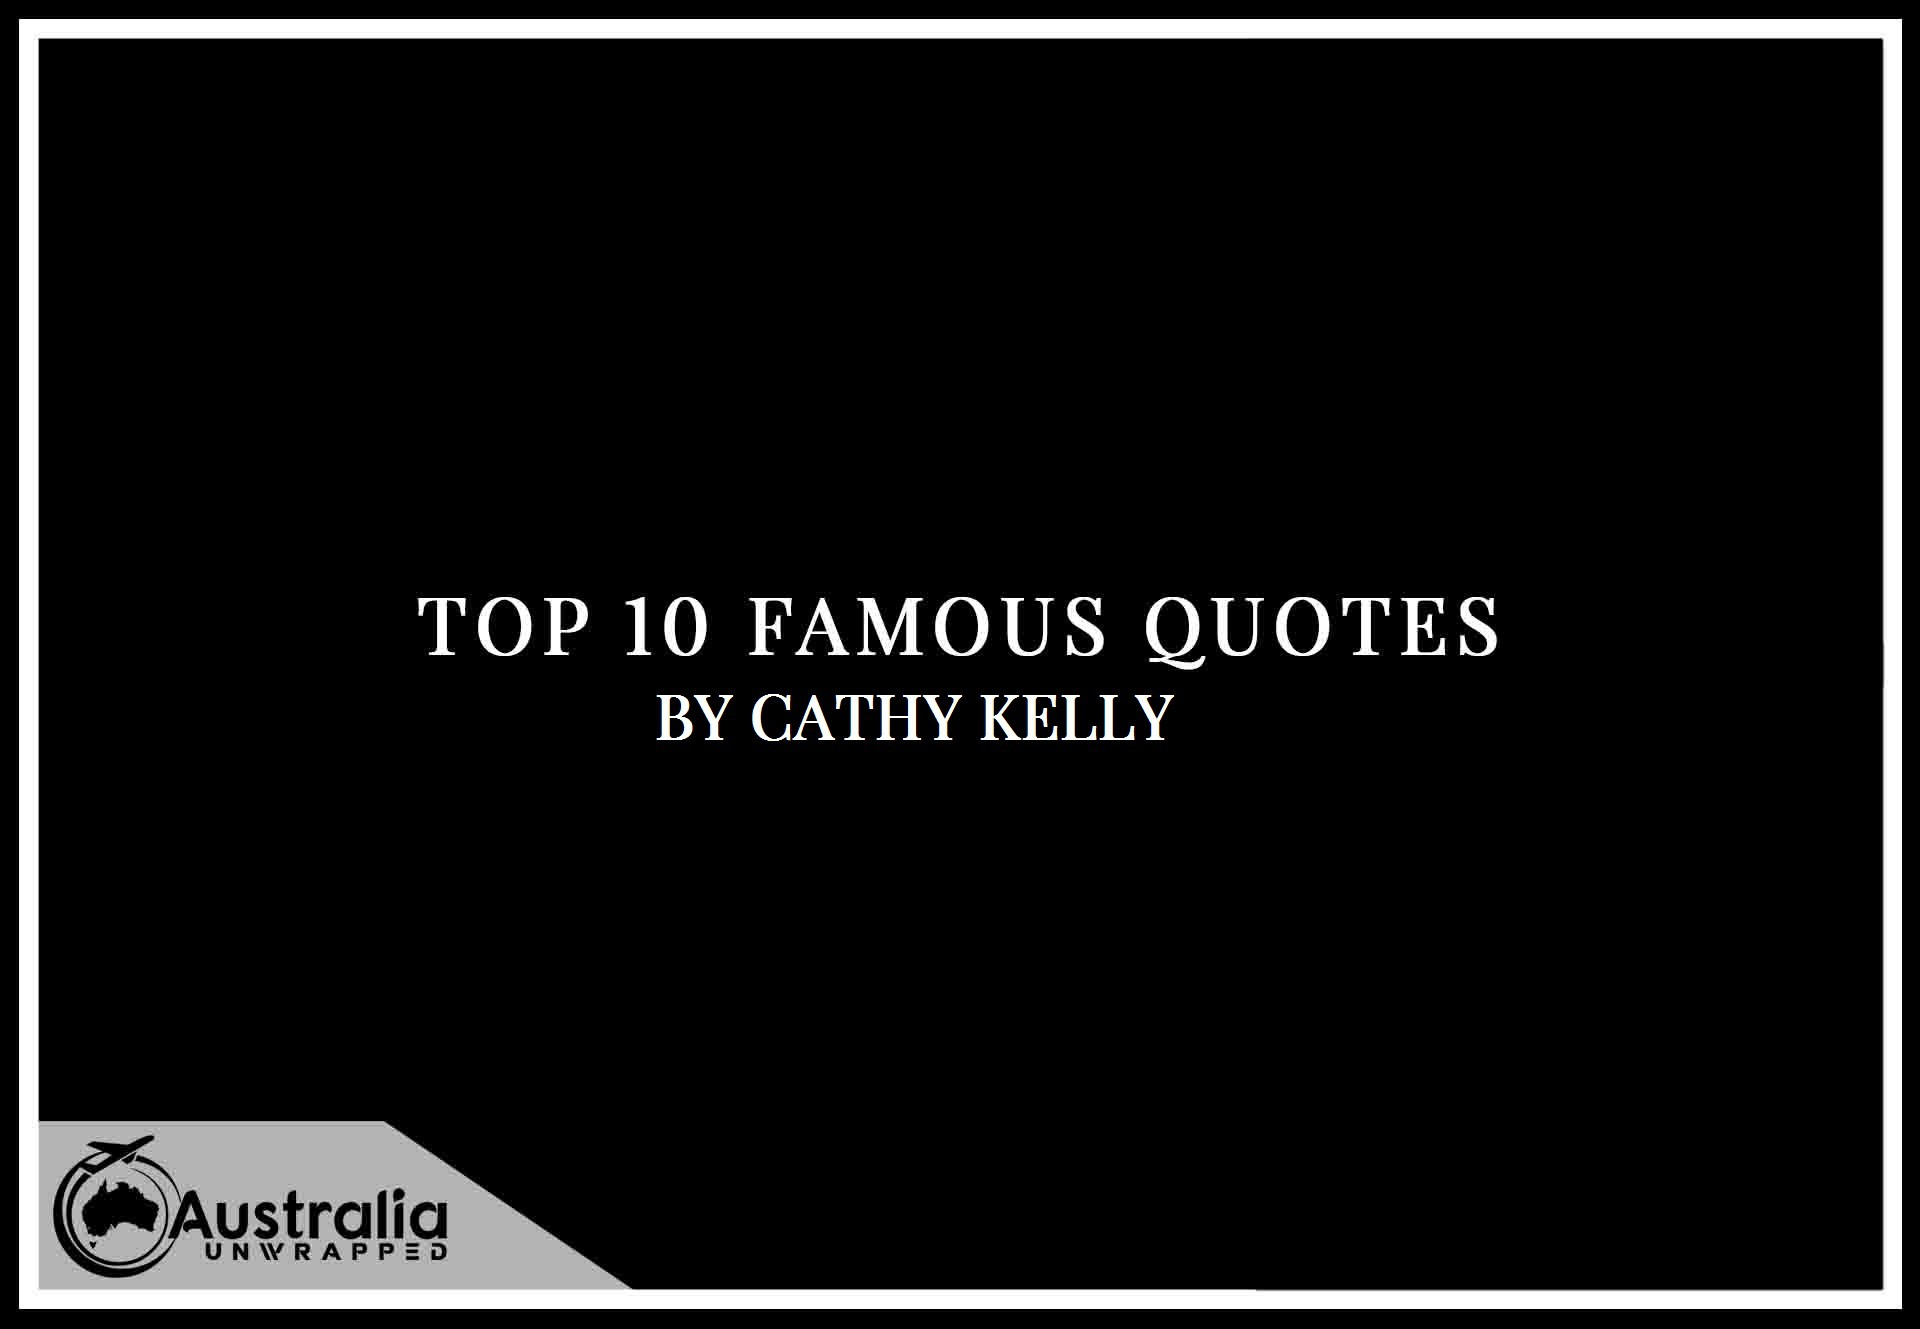 Cathy Kelly's Top 10 Popular and Famous Quotes